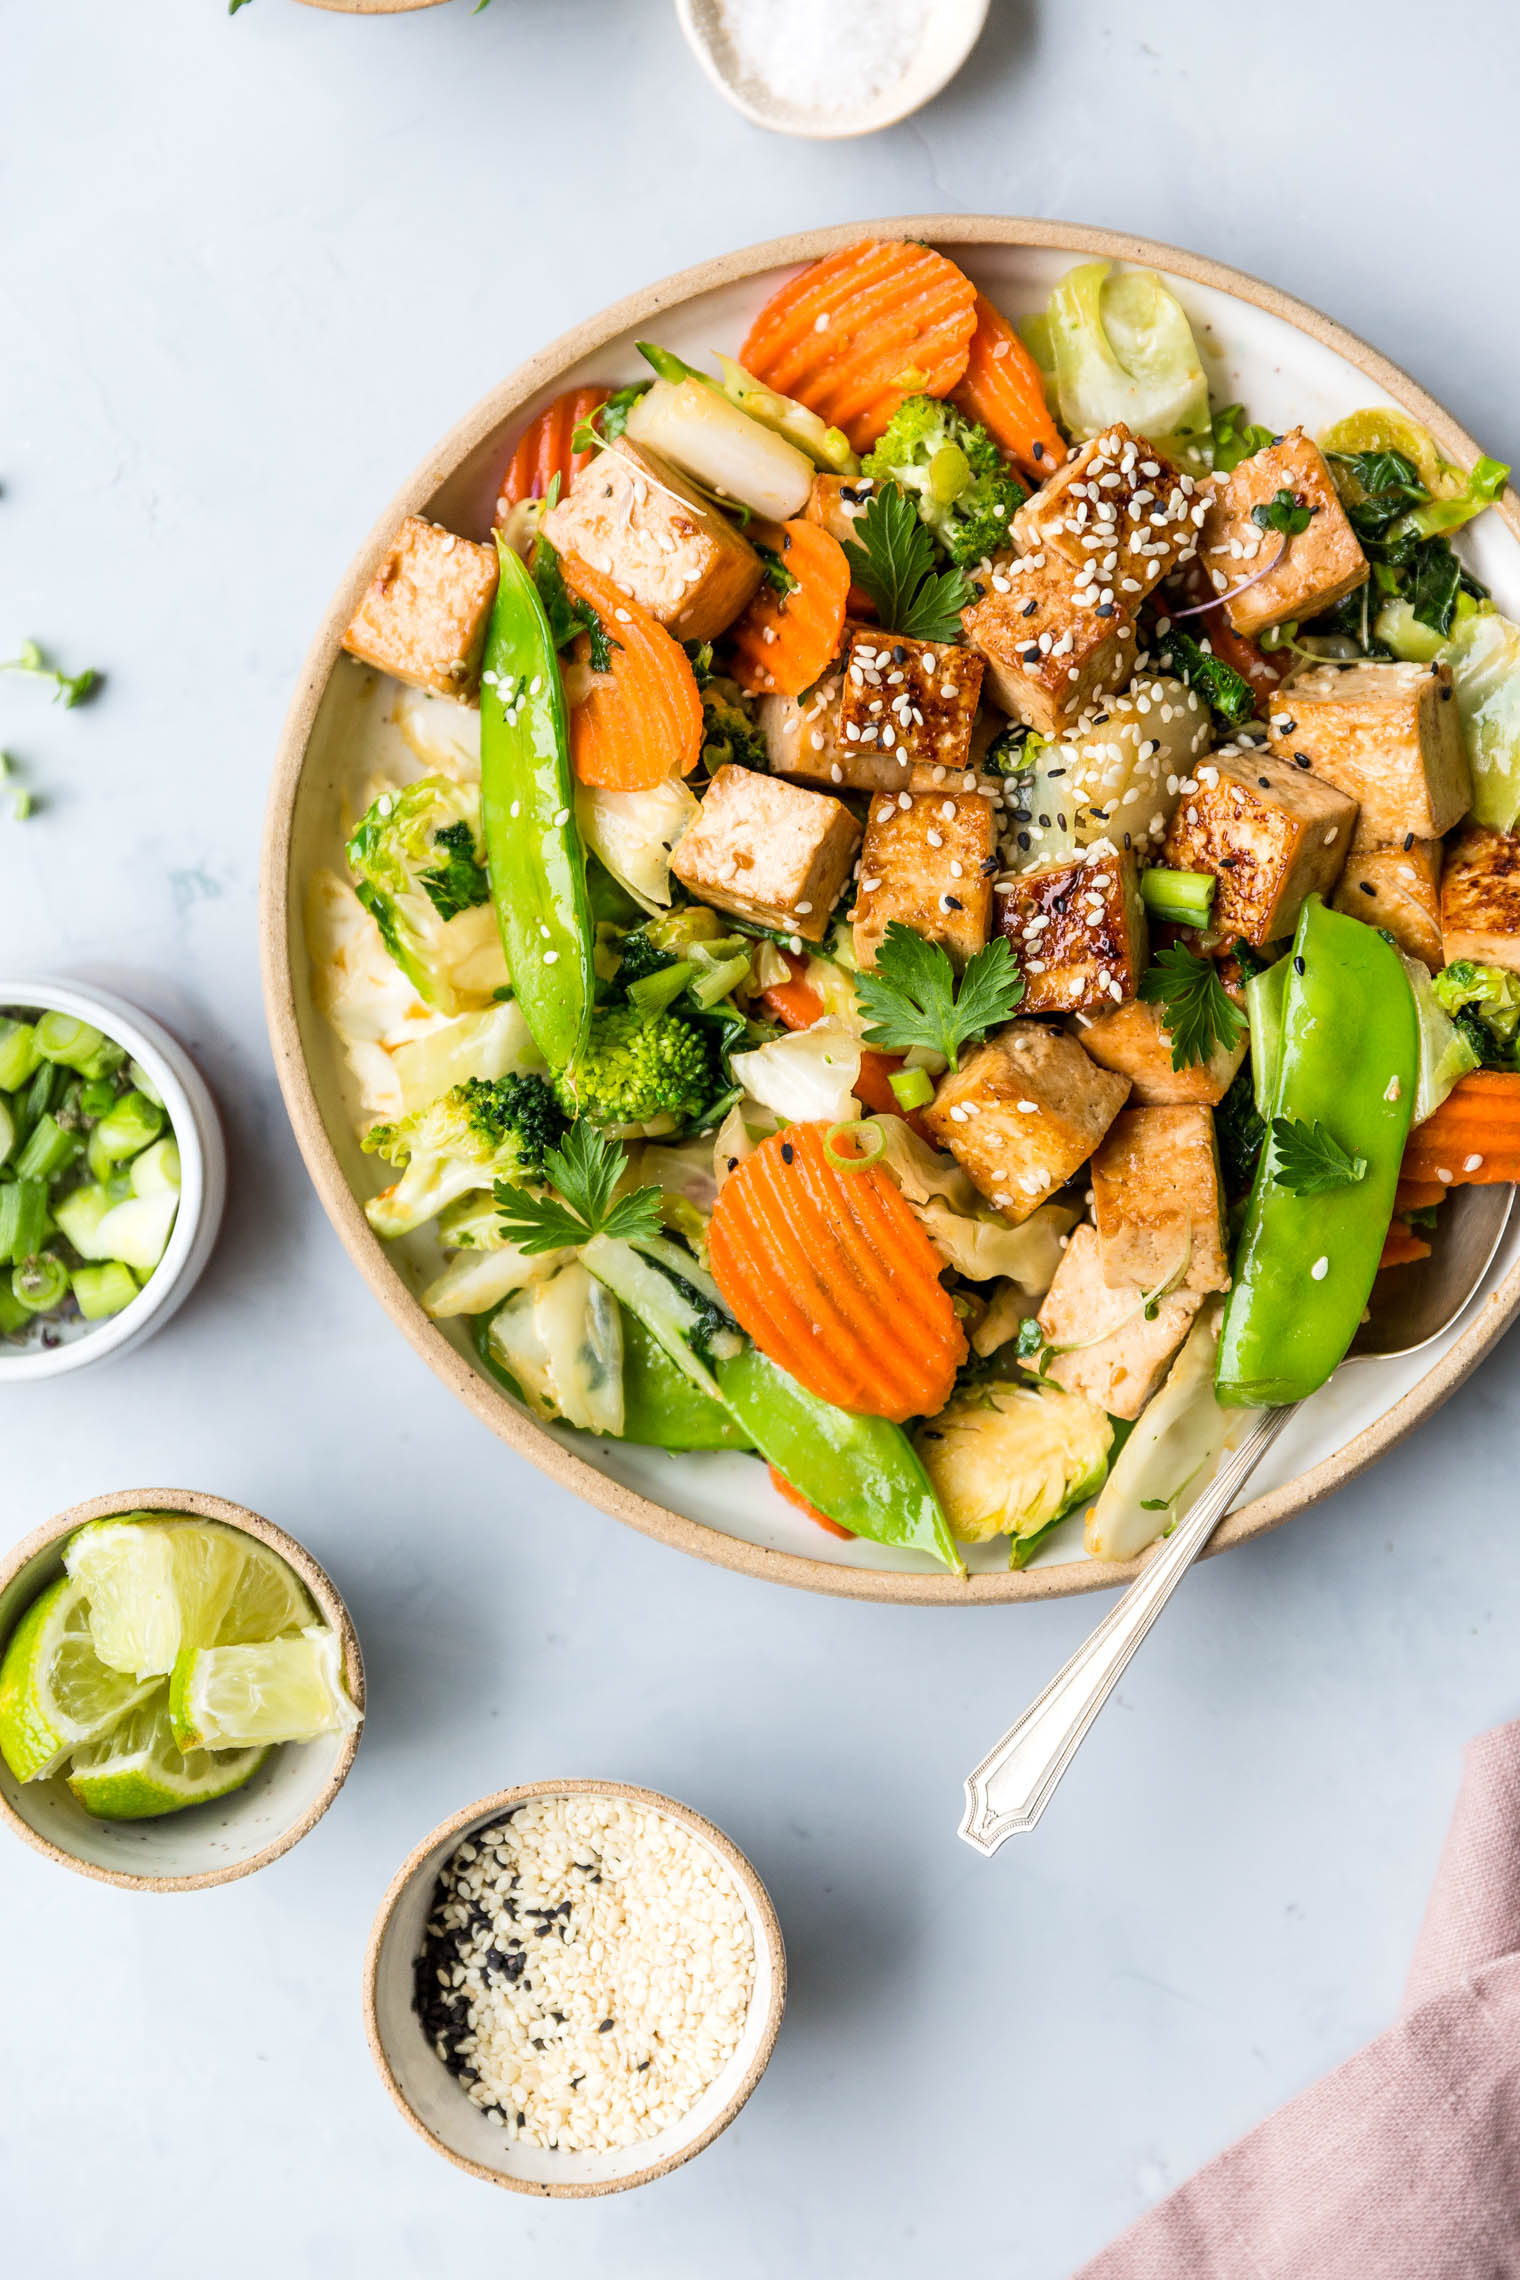 Ginger Sesame Tofu & Winter Vegetable Stir-Fry